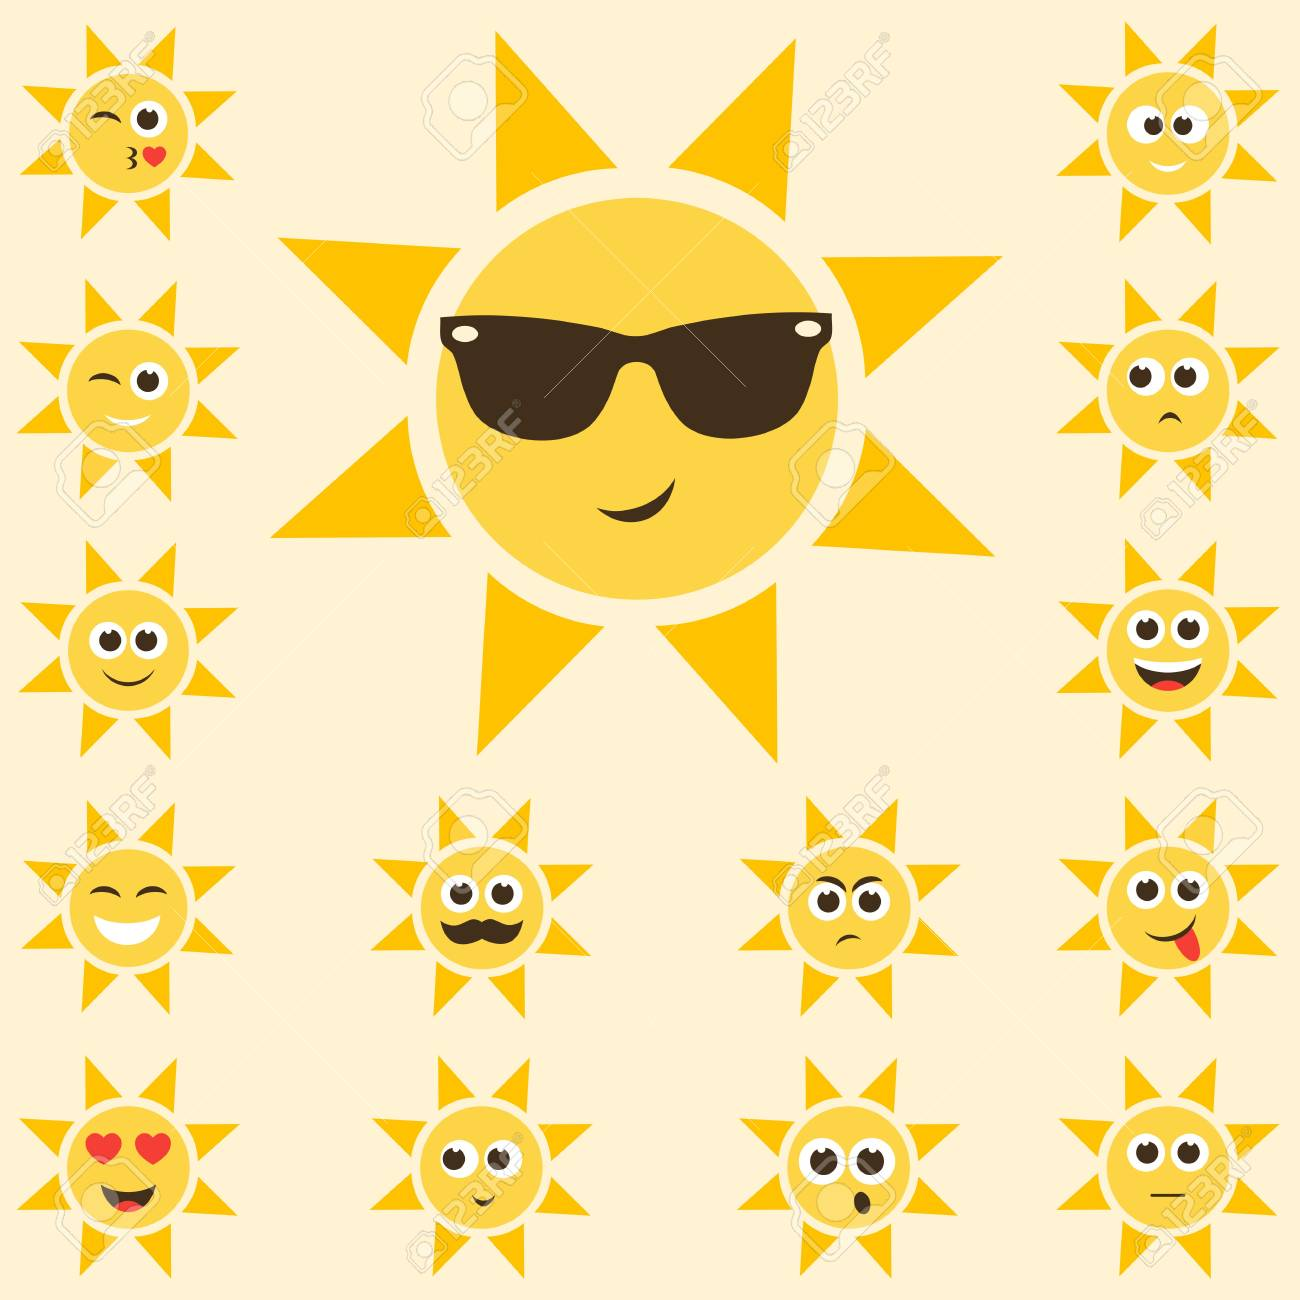 Sun Set With Funny Smiley Faces Royalty Free Cliparts Vectors And